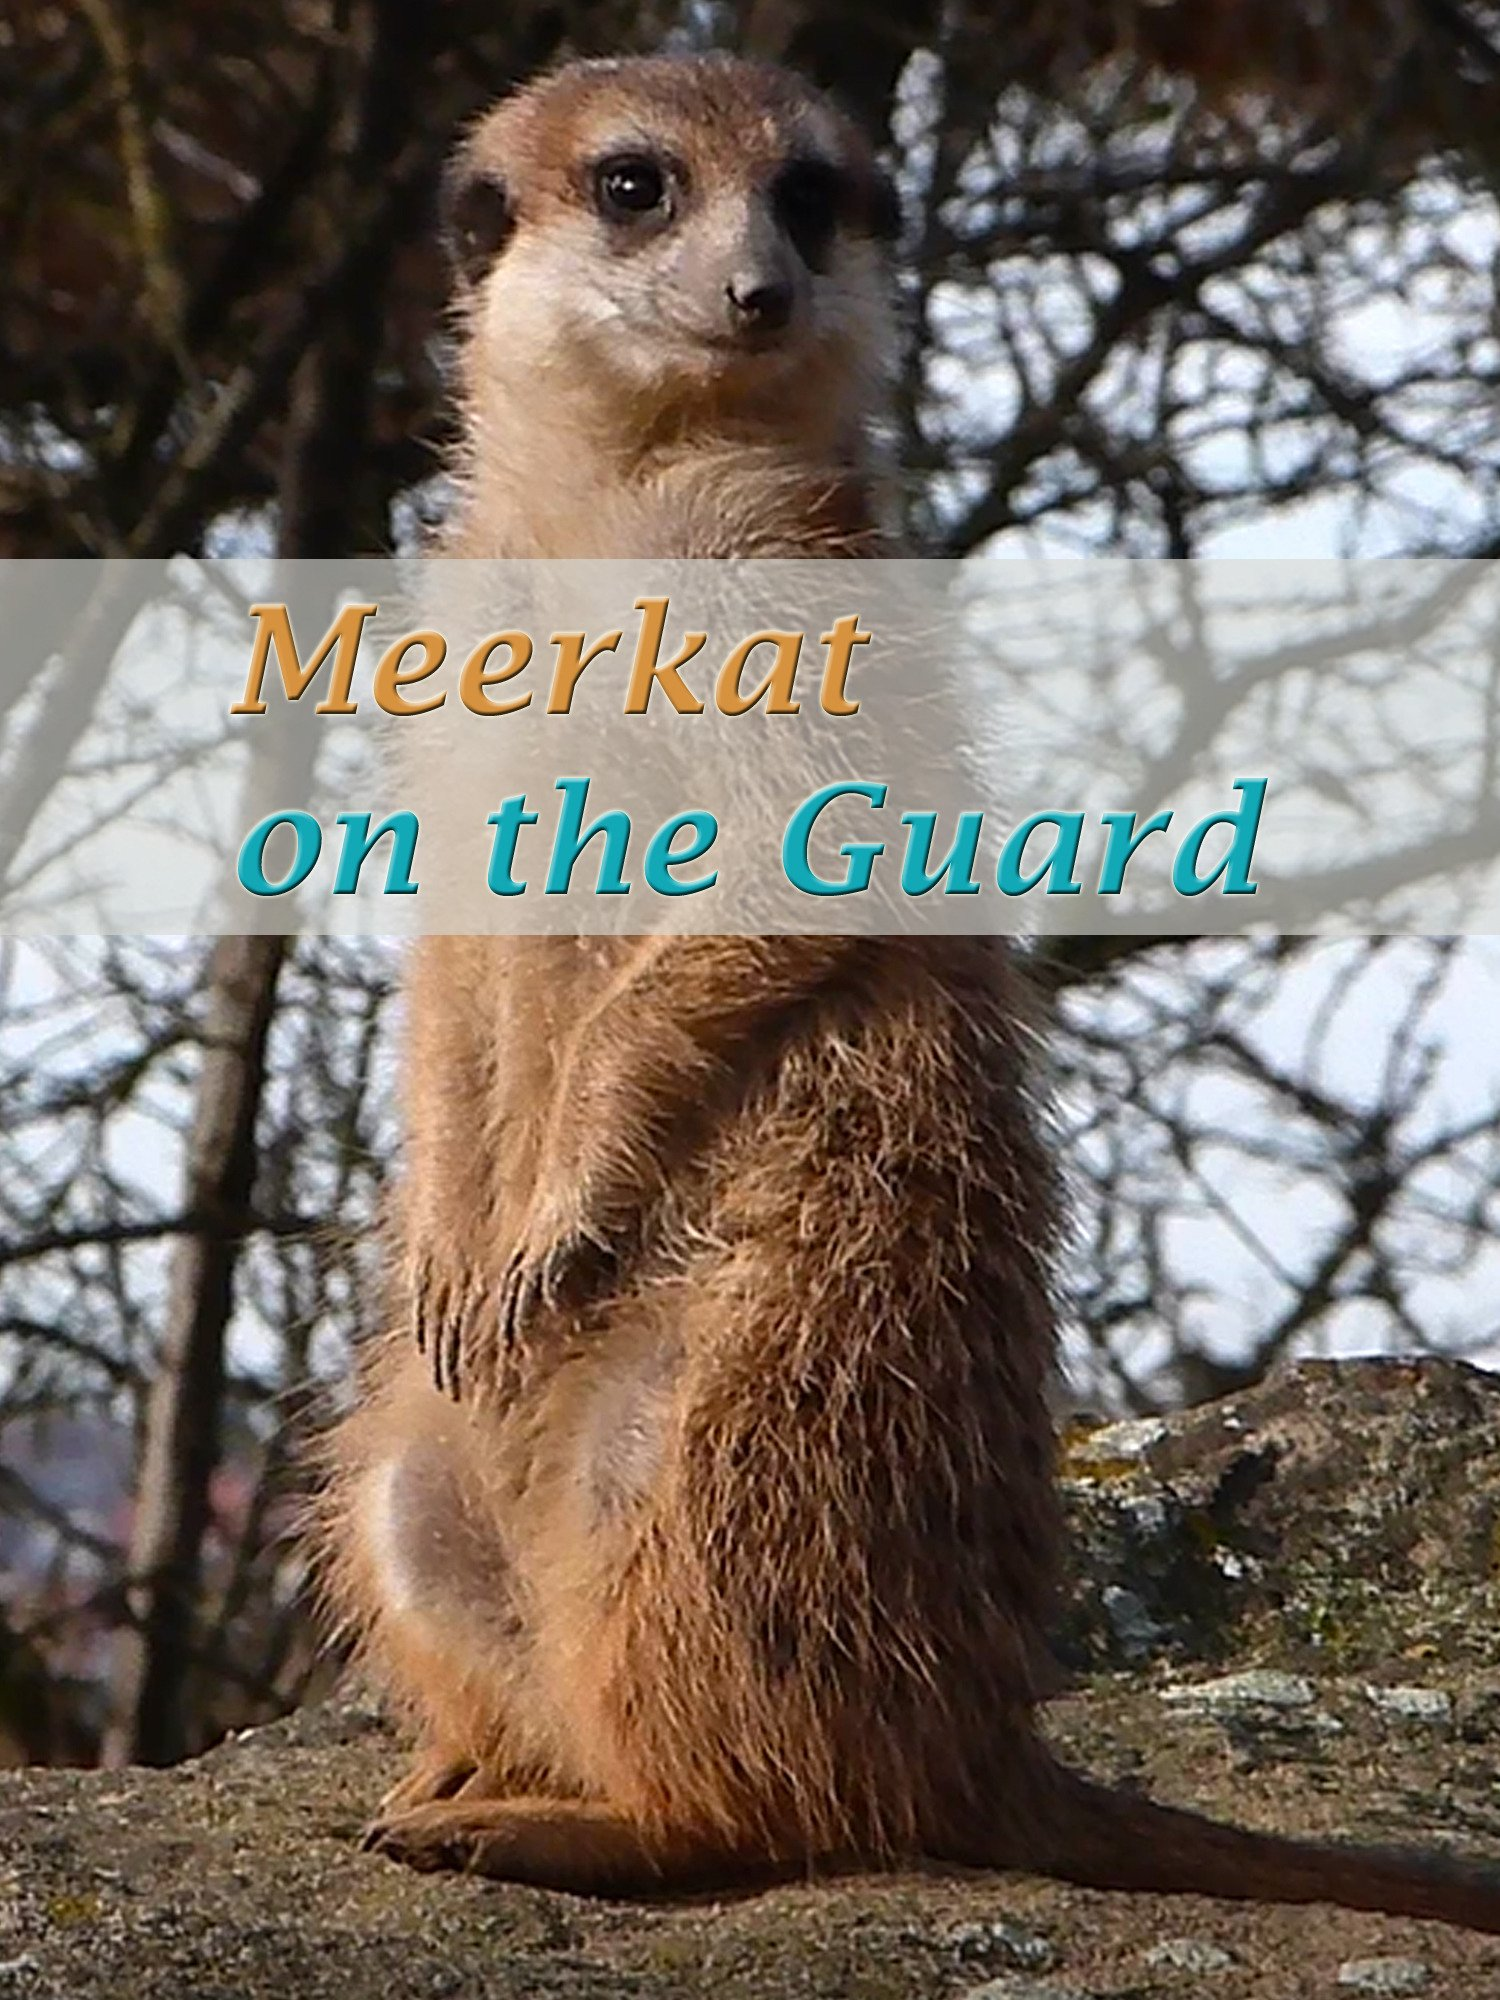 Meerkat on the Guard